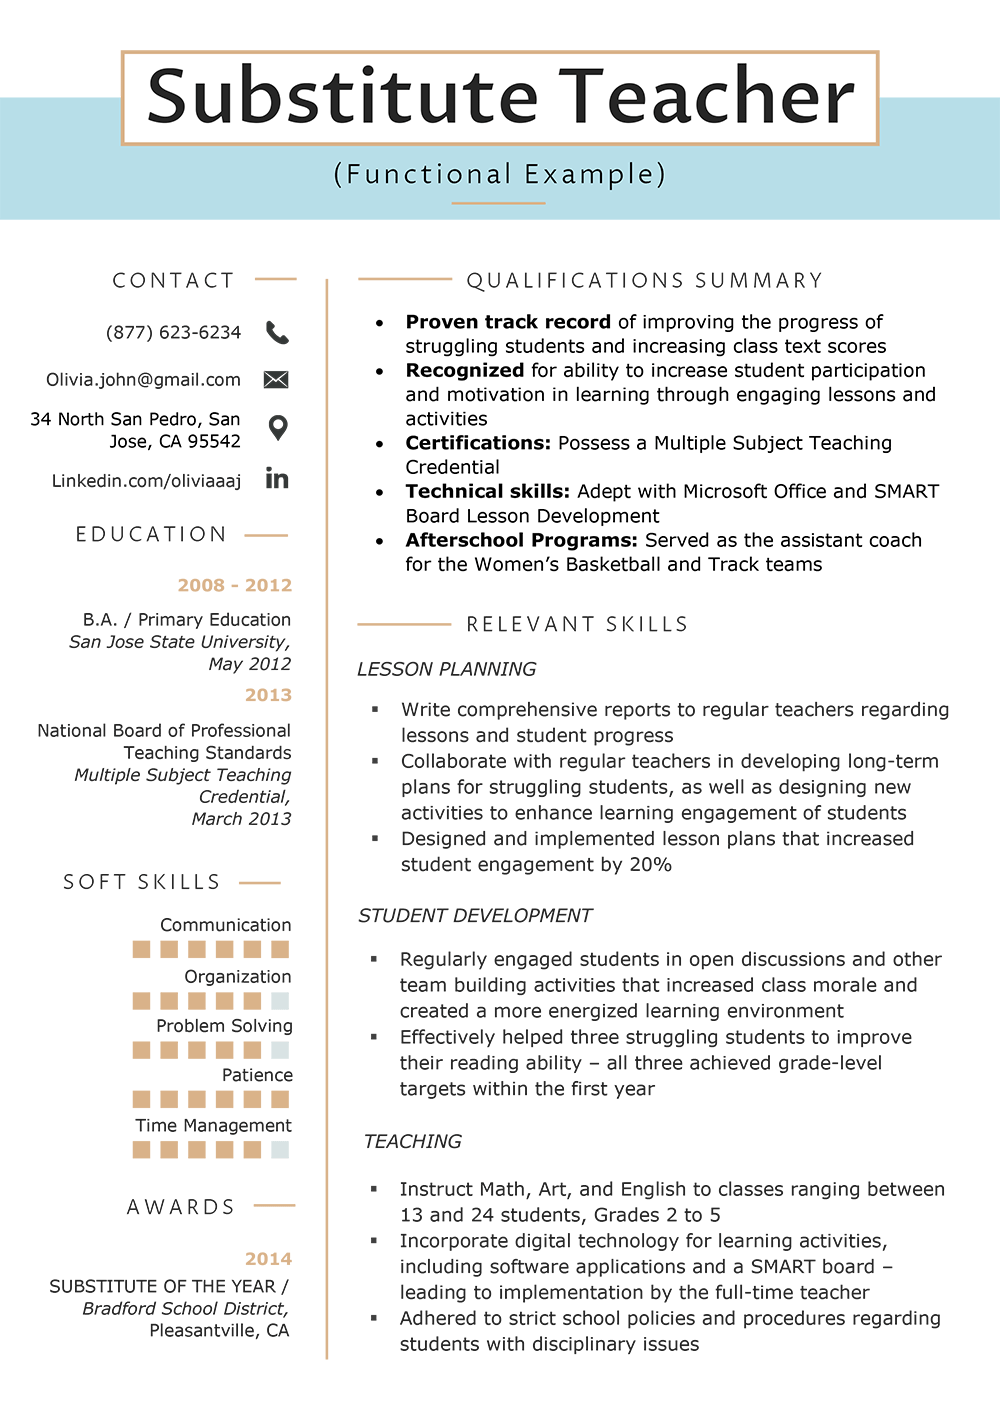 sample resume without qualifications